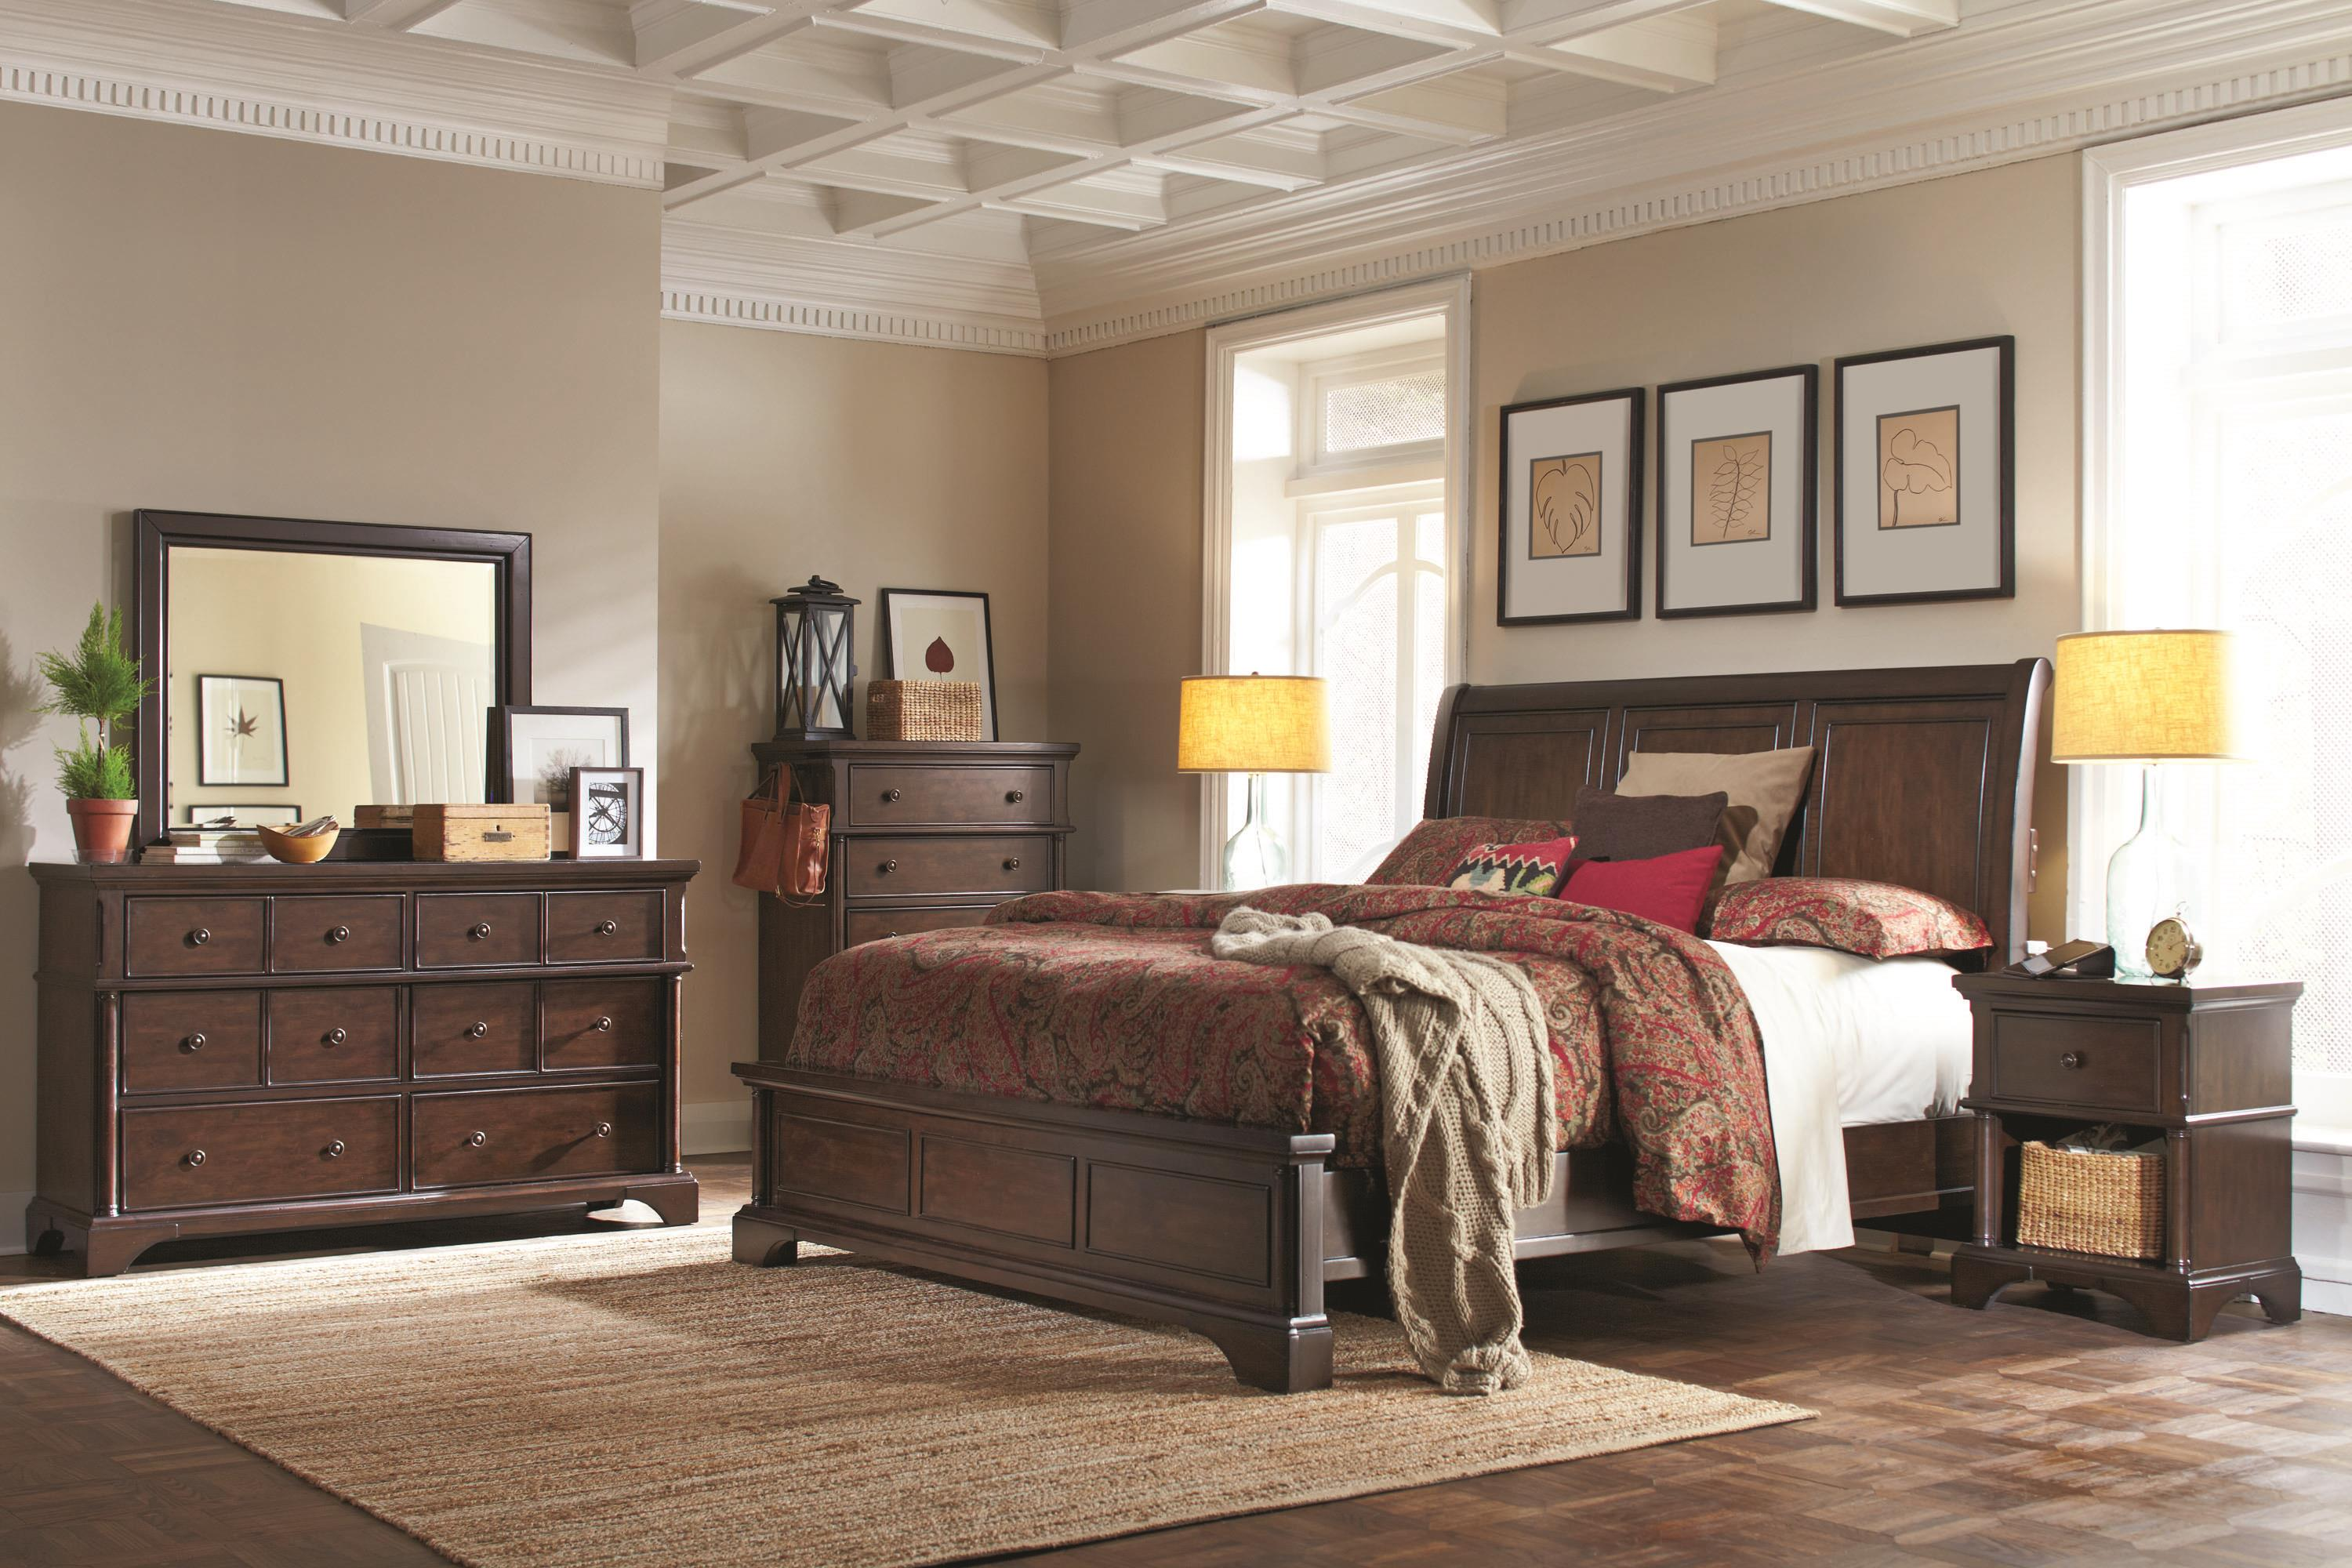 Bancroft King Bedroom Group by Aspenhome at Mueller Furniture